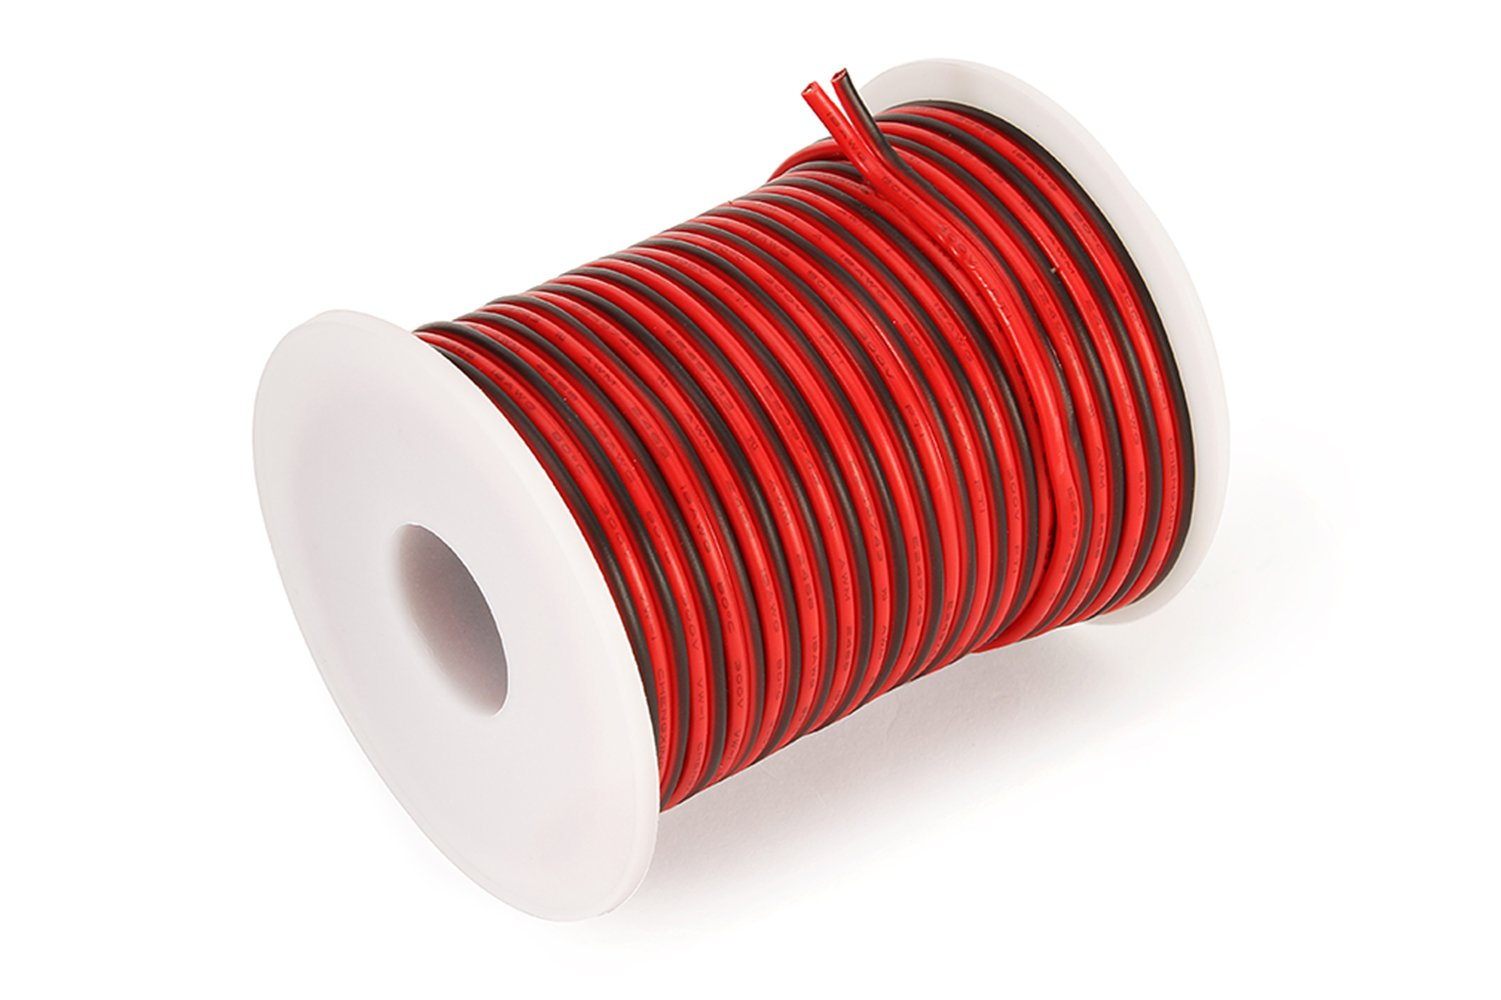 C-able 50Foot 18 Gauge Hookup Electrical 2 Red Black Wire LED Strip Extension Wire AWG Copper Flexible Stranded Wire Cord Welding Leads Cable Conductor for LED Ribbon Lamp Tape Lighting